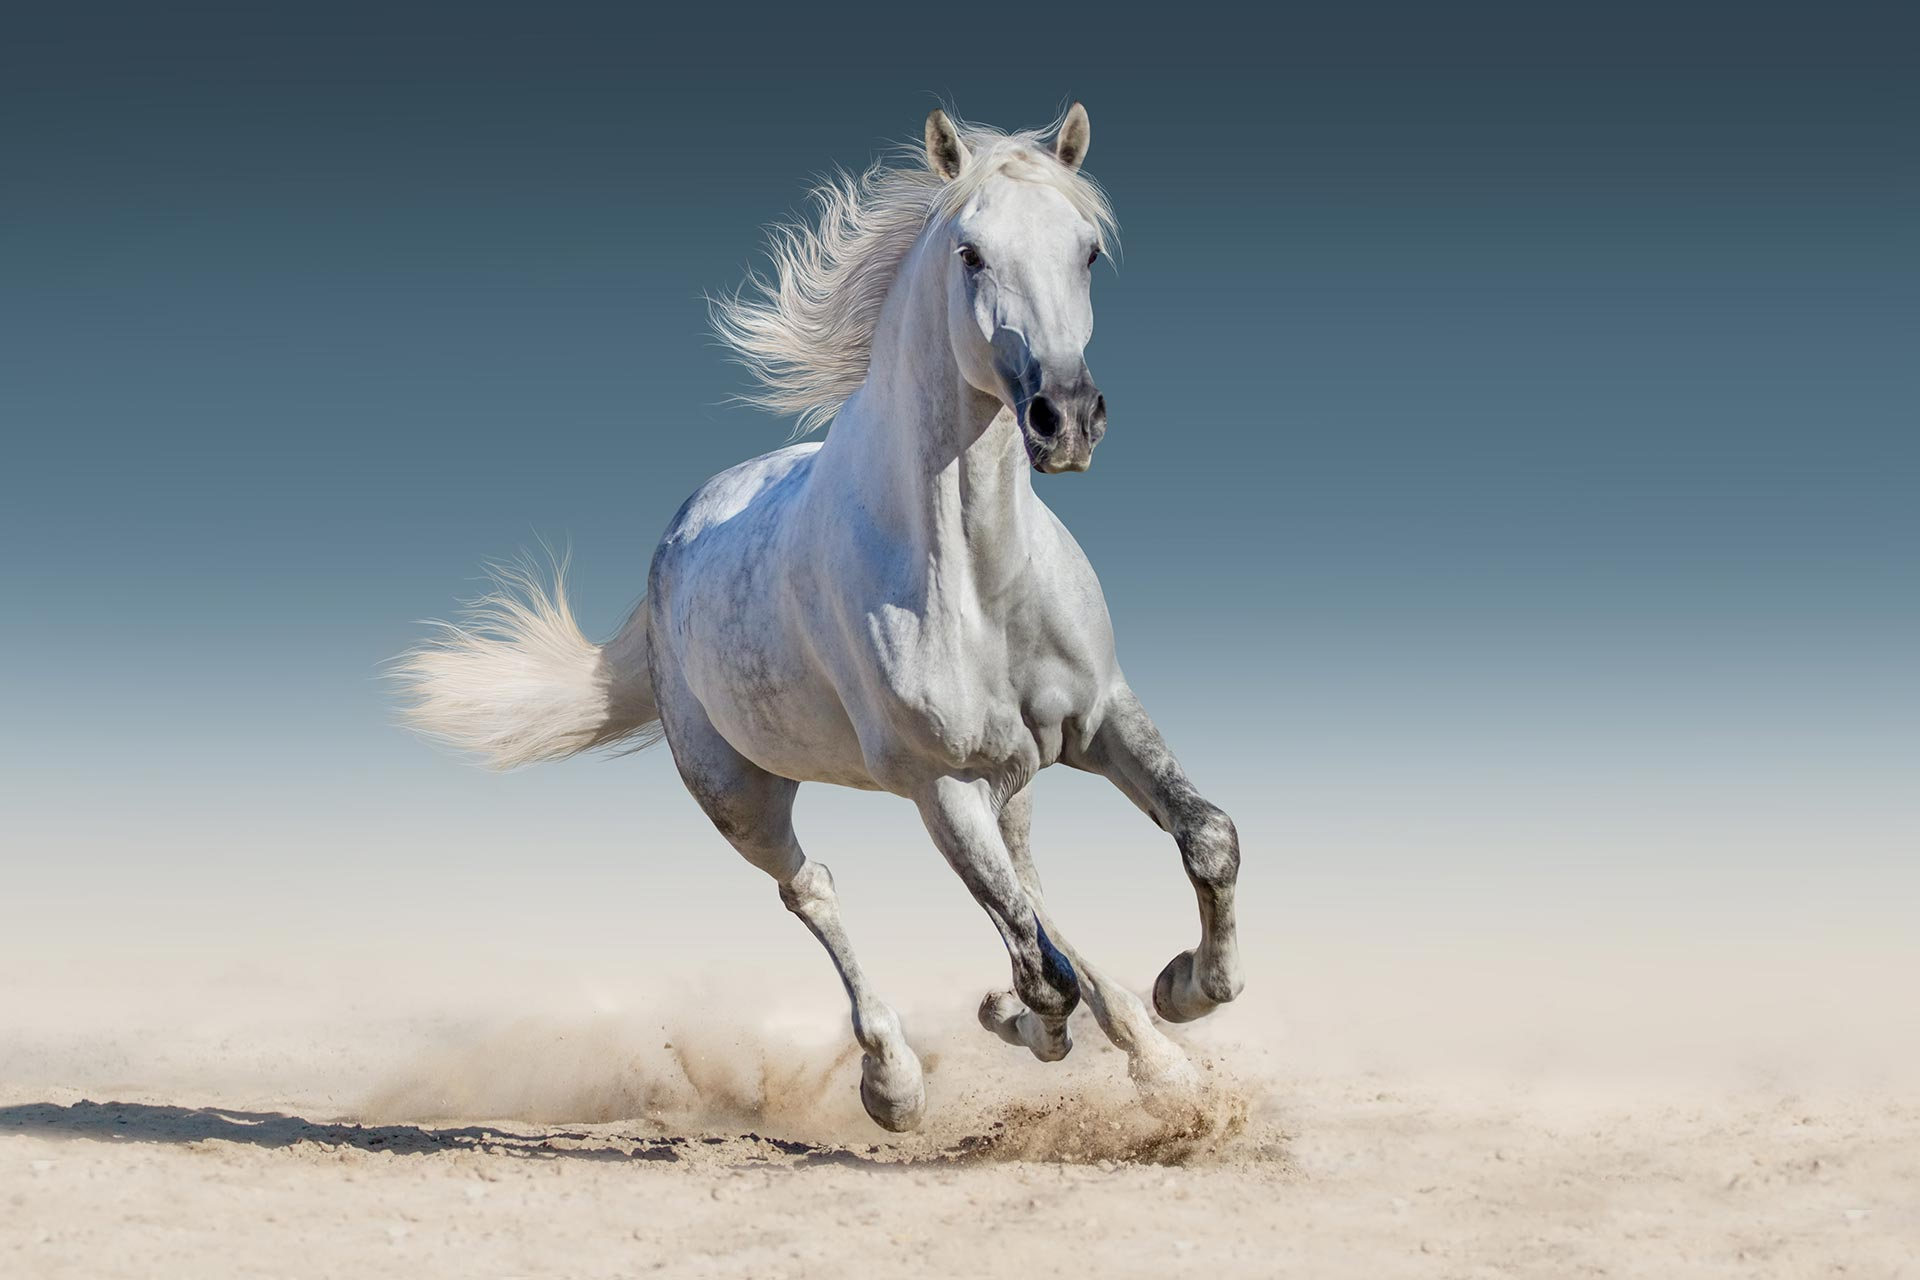 AUSTRALIAN EQUINE EXPORTING SERVICES